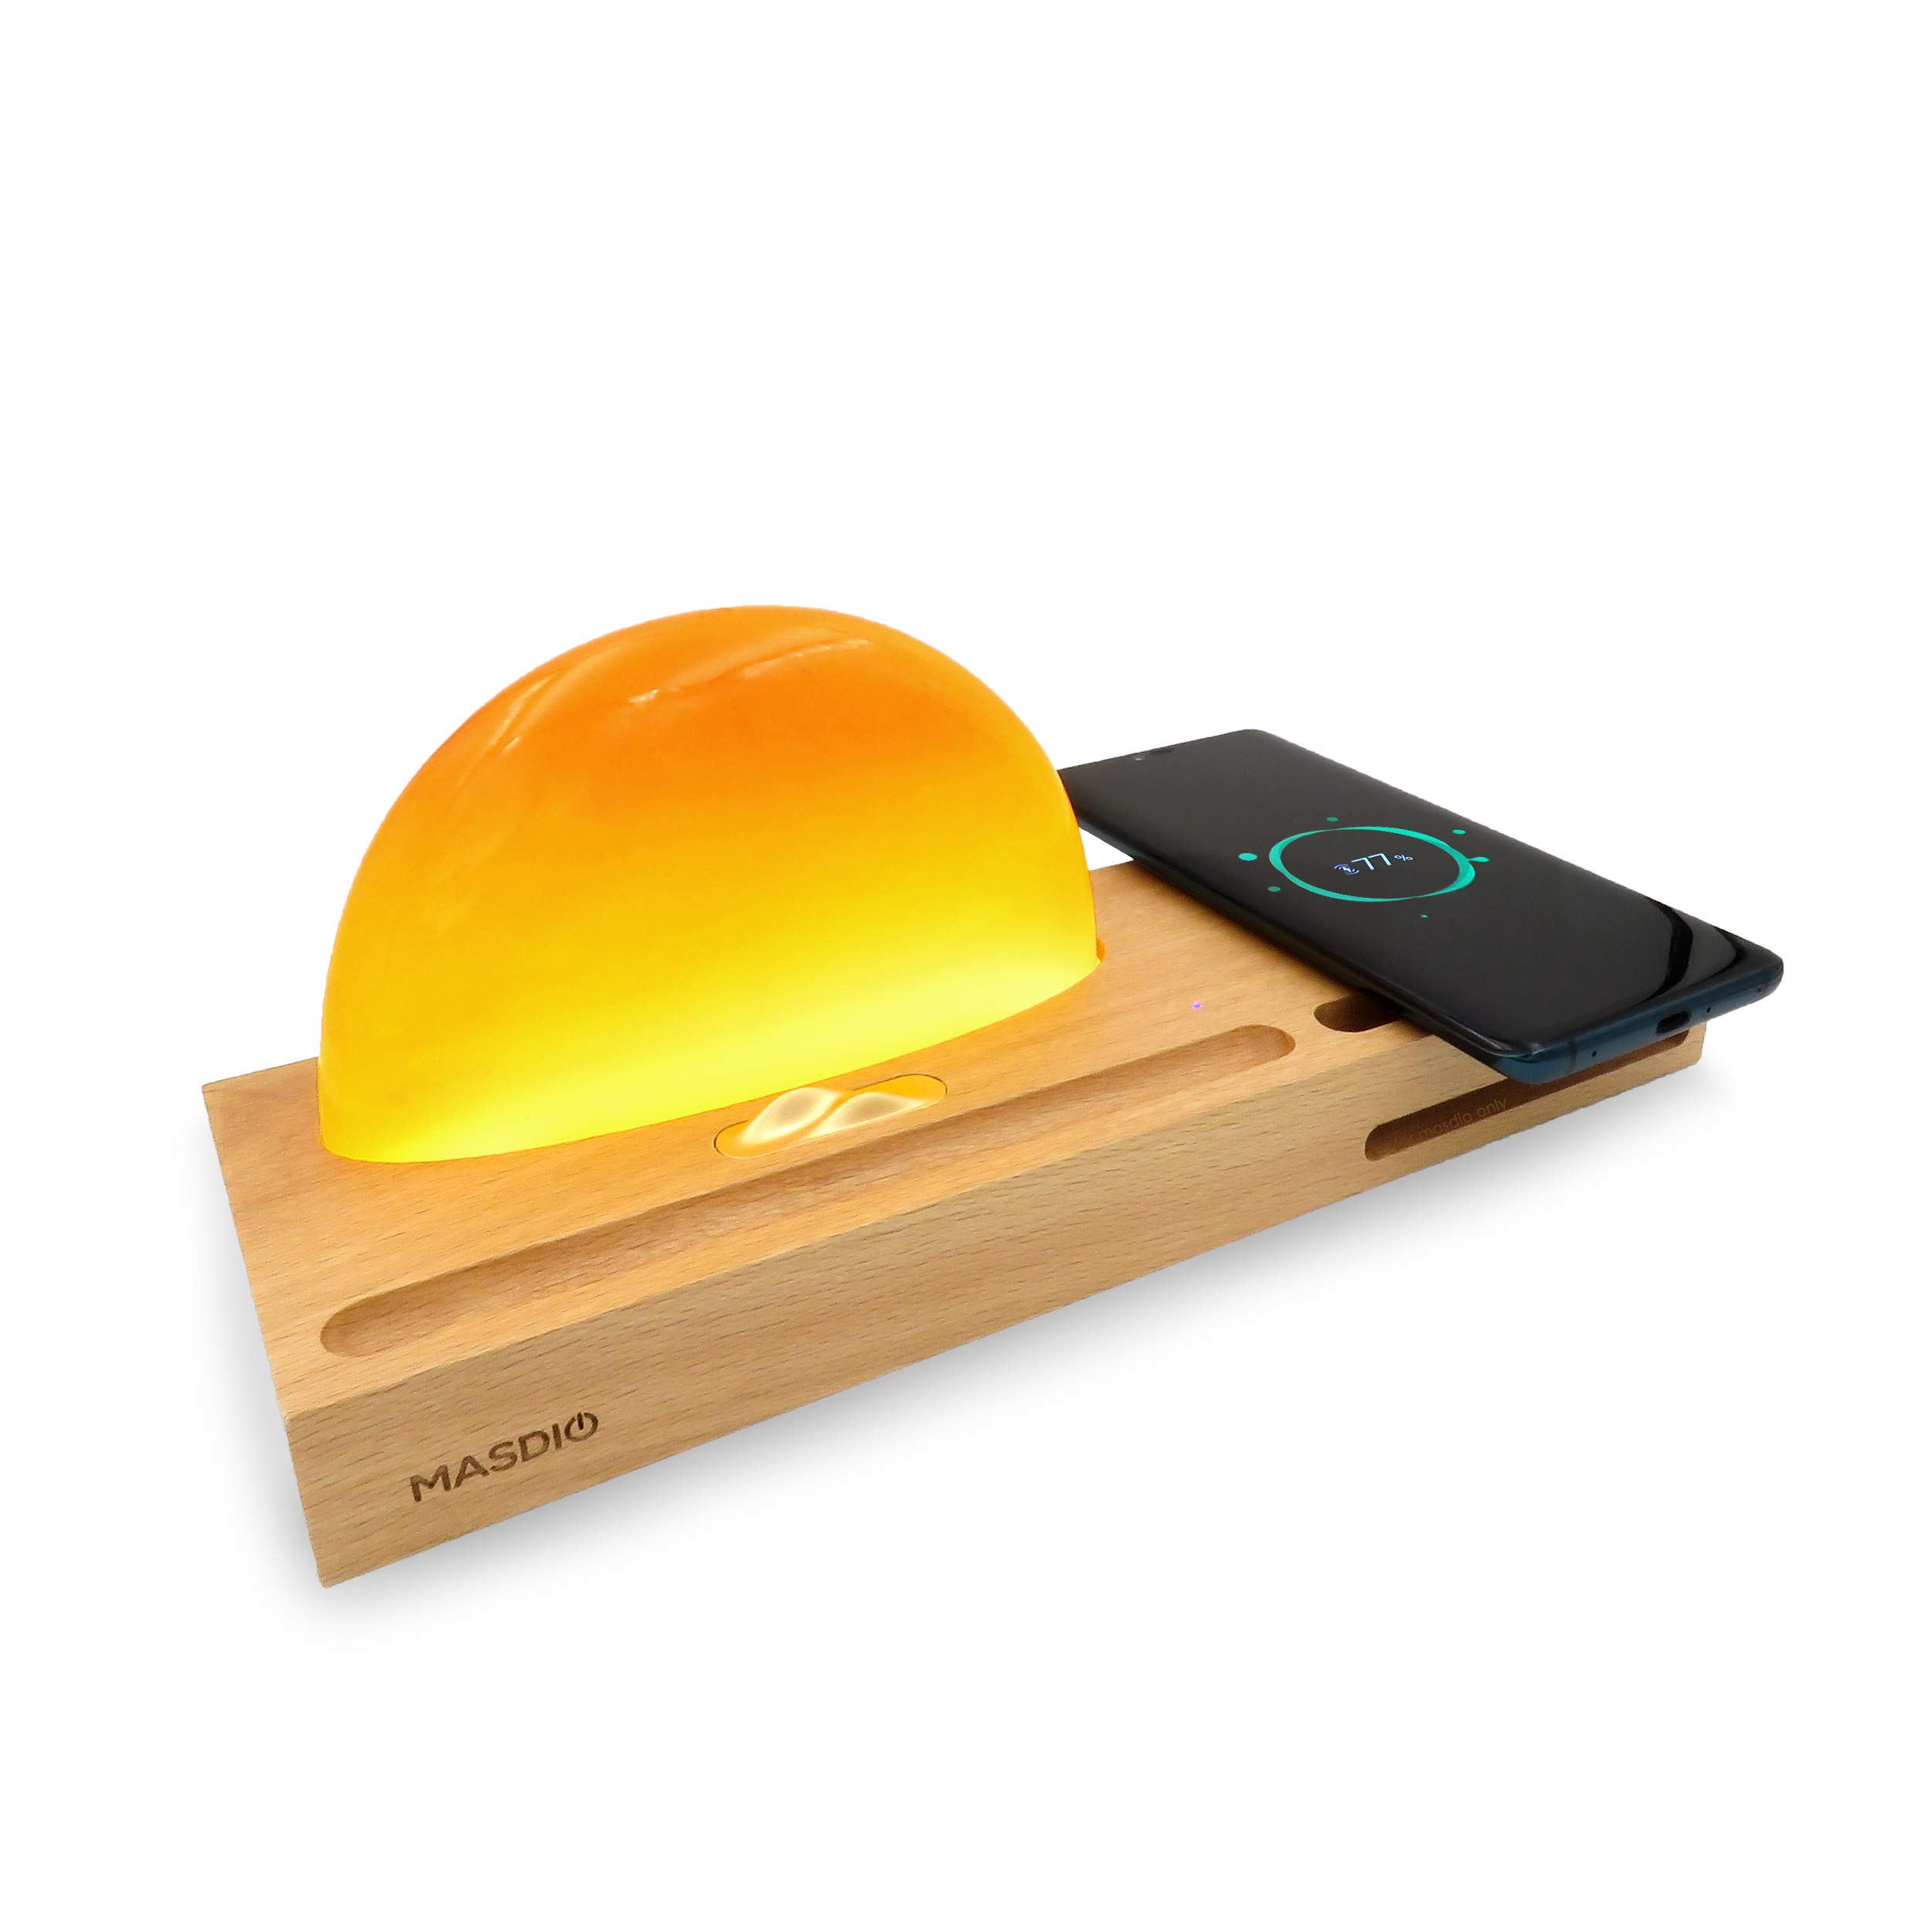 Masdio Sunrise Amber Lamp, Ambient Lamp Meditation Lamp with Amber Resin, Wireless Charger, Sound Amplifier, Pen & Cell Phone Holder (Amber Resin)